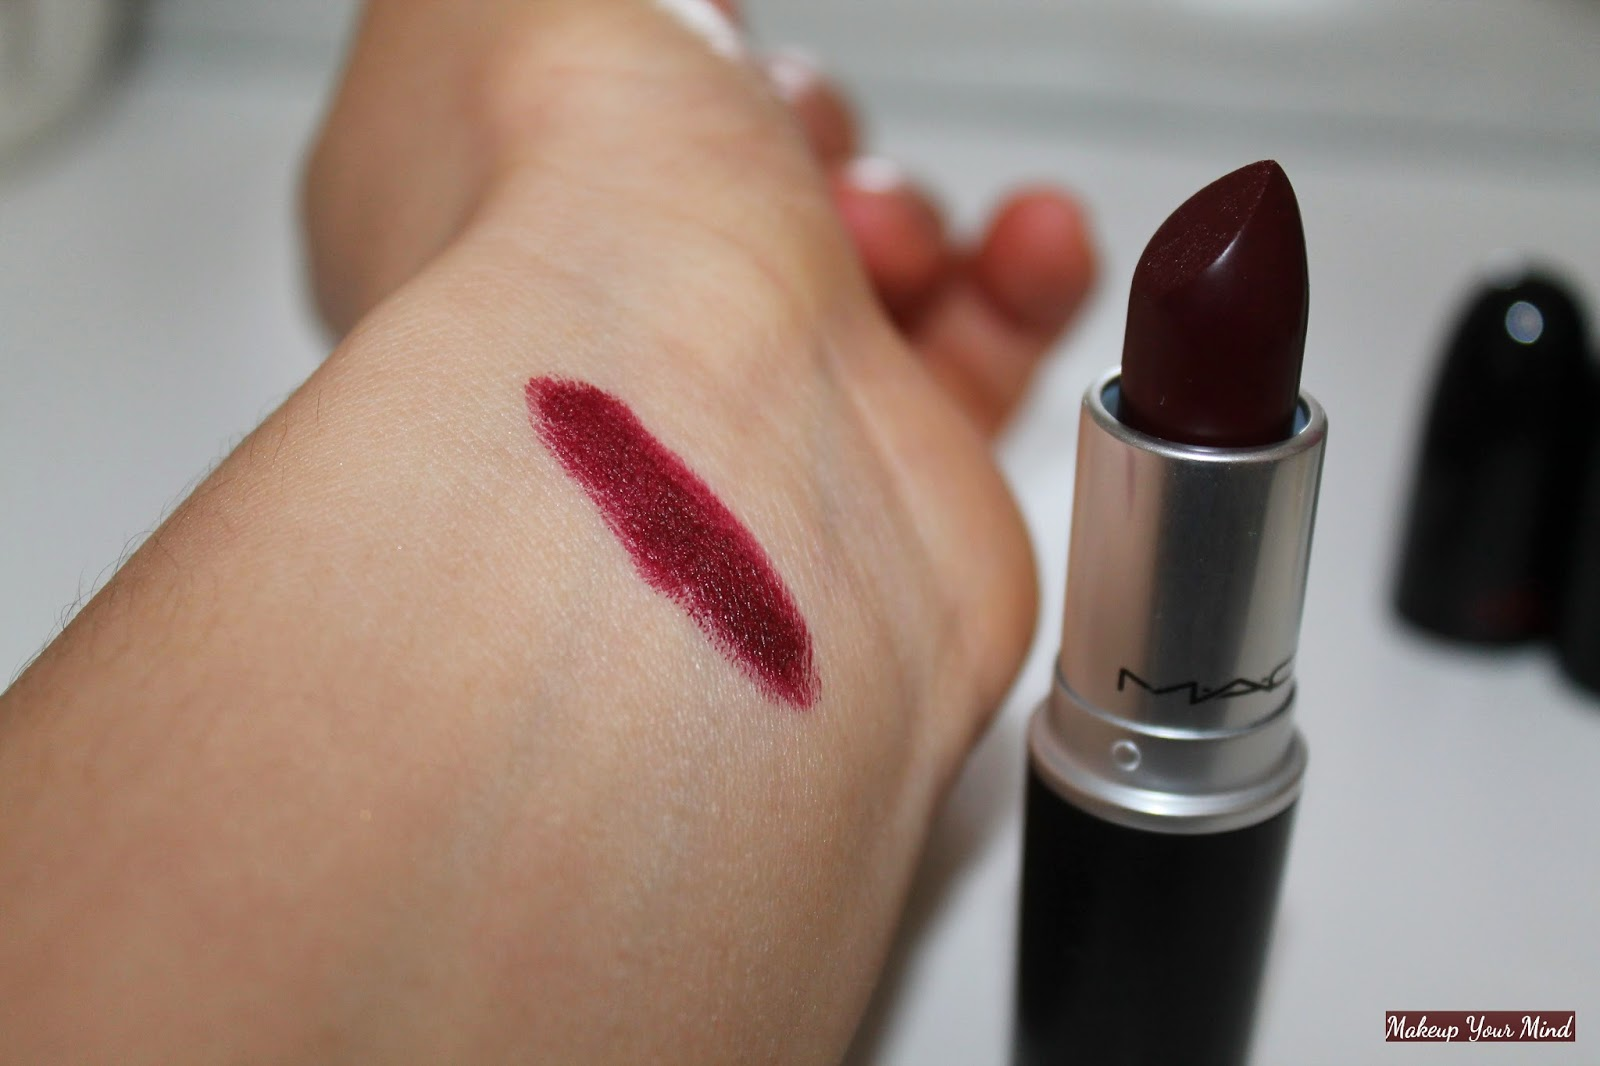 makeup your mind vampy lips mac quotsinquot lipstick and some